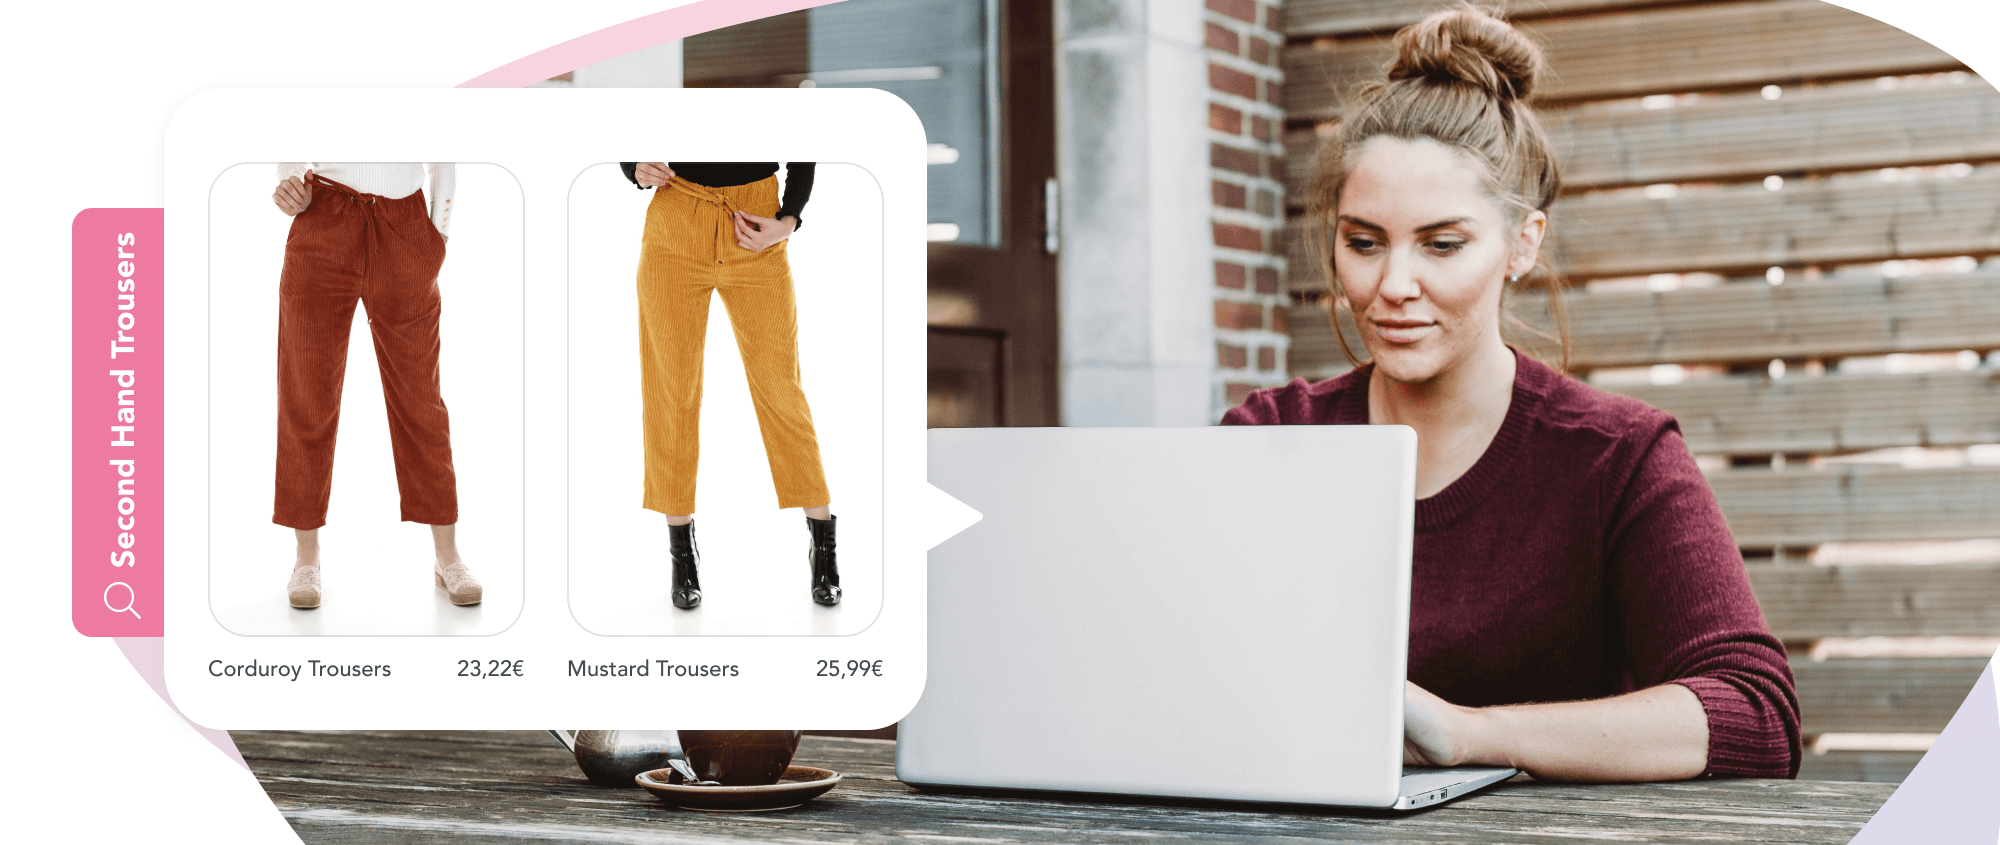 Girl browsing on her laptop for second hand trousers using visual AI